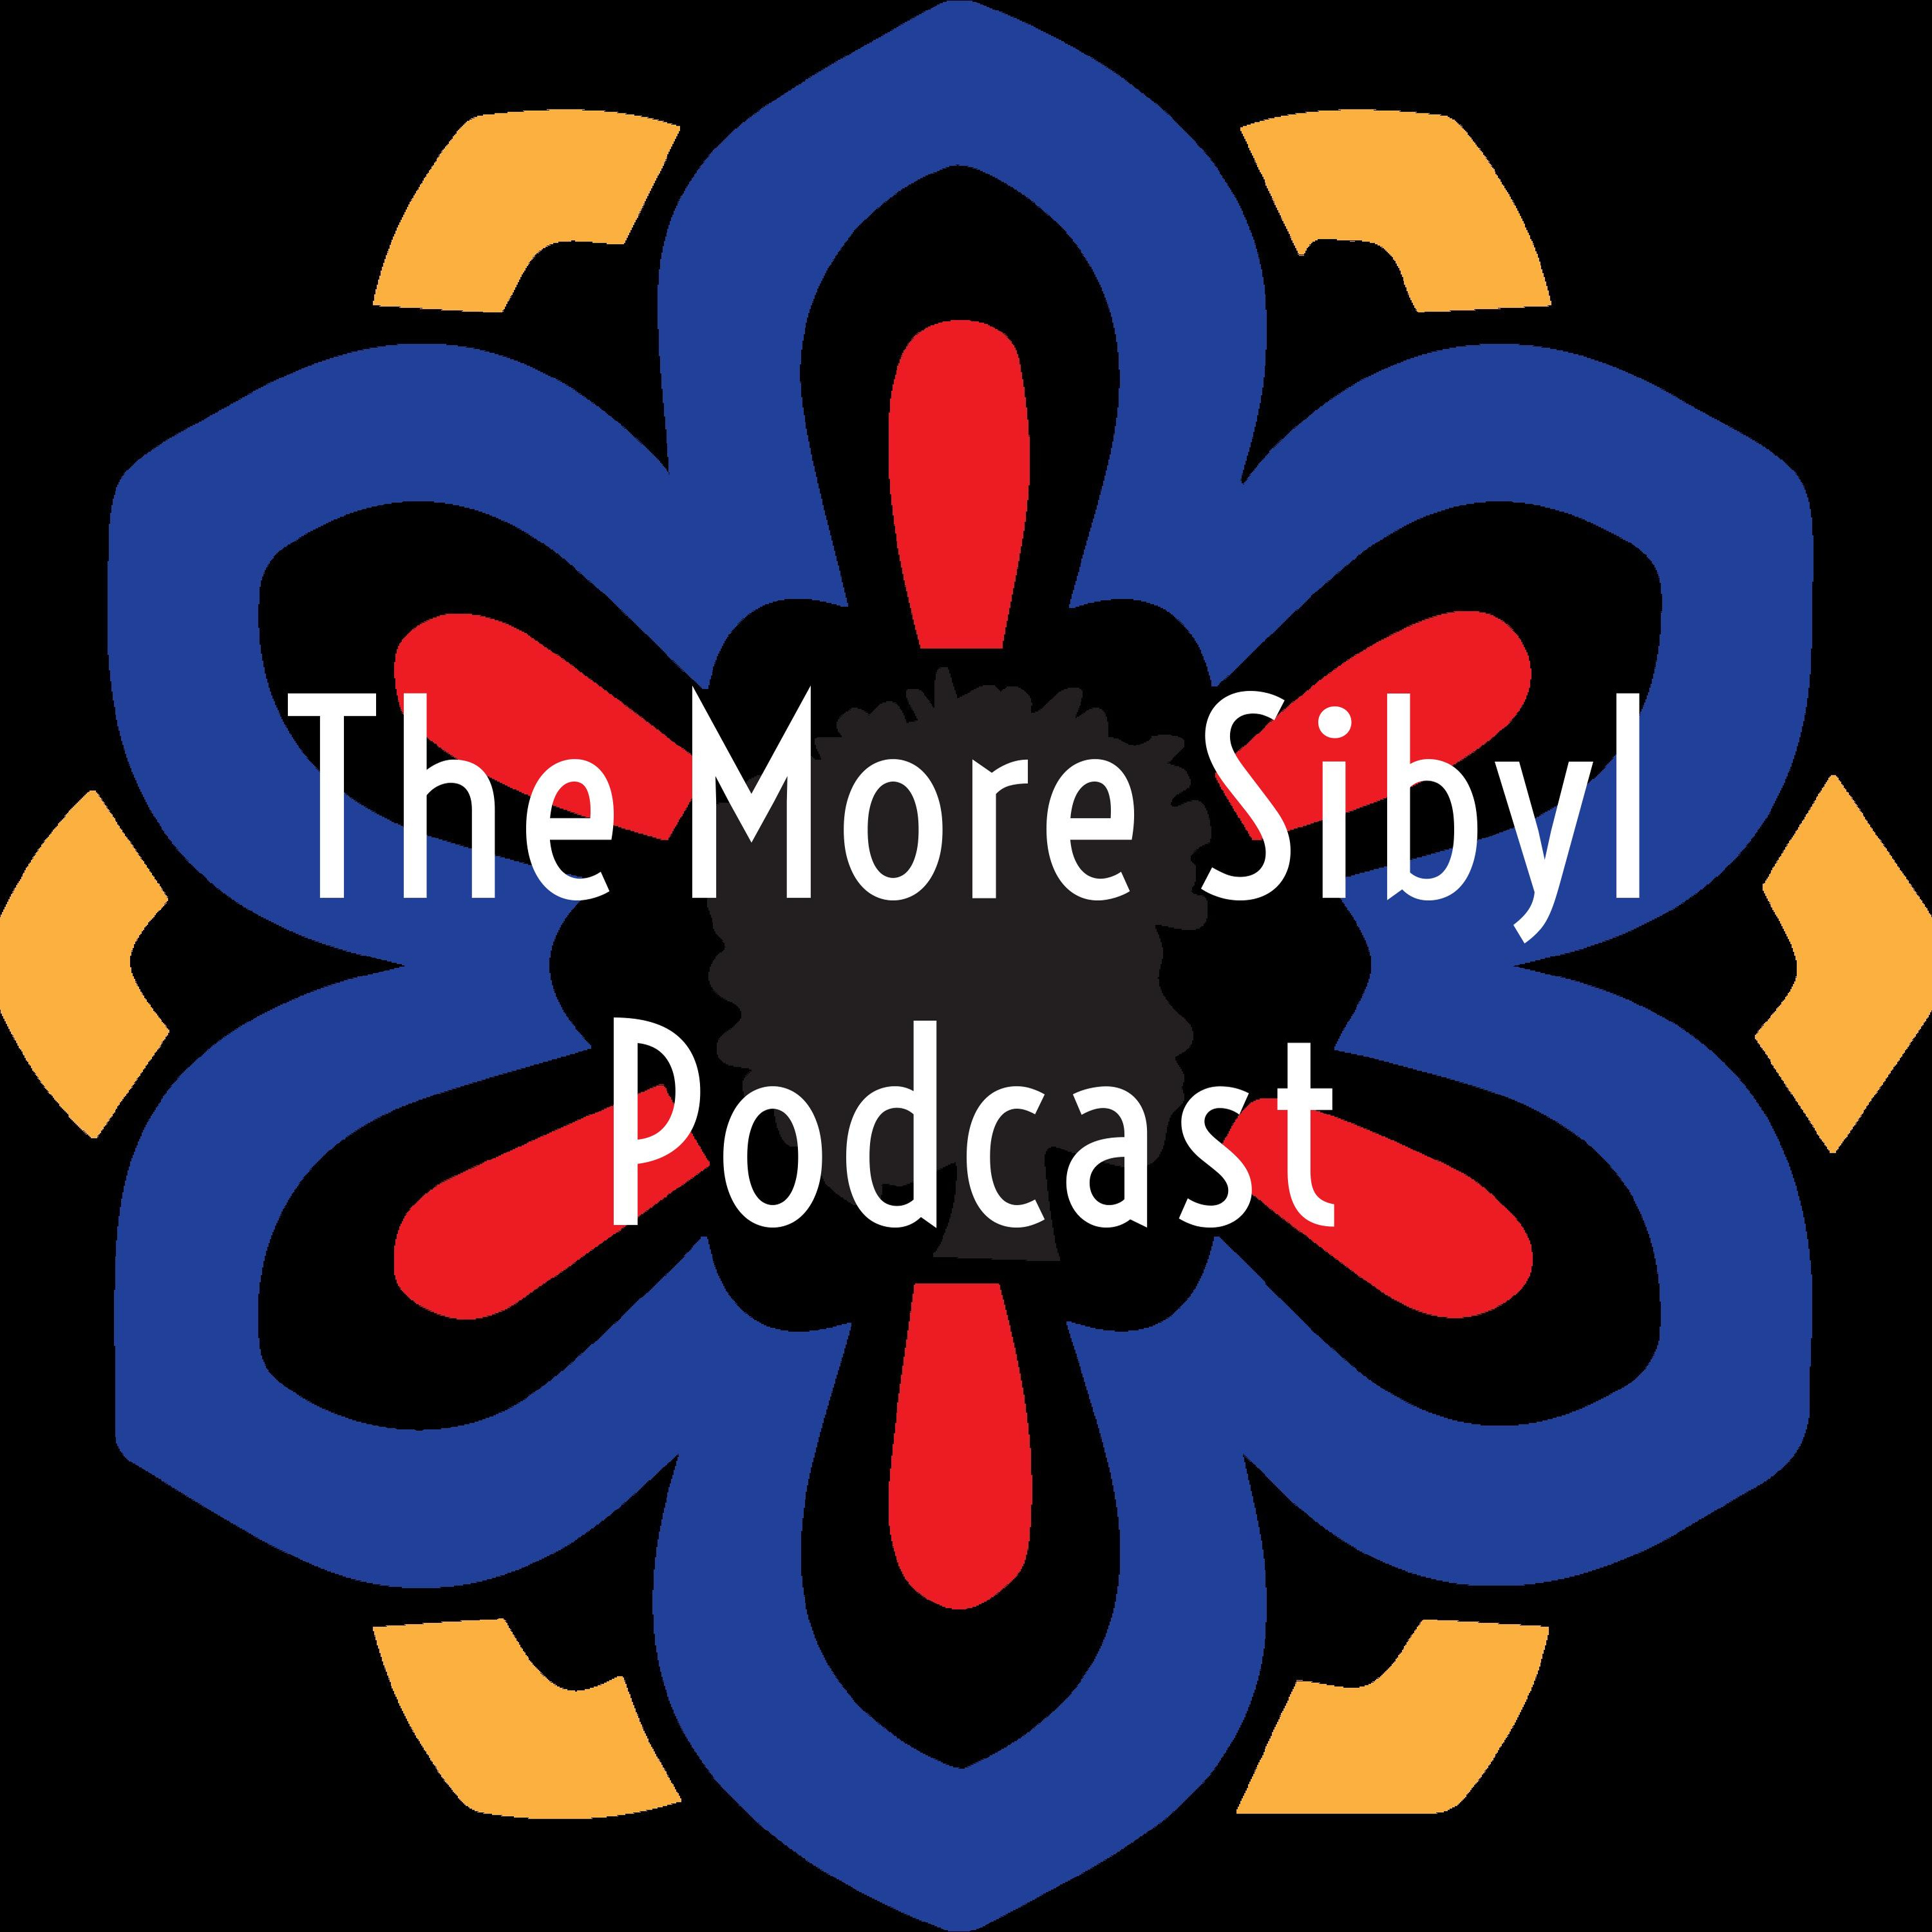 The More Sibyl Podcast